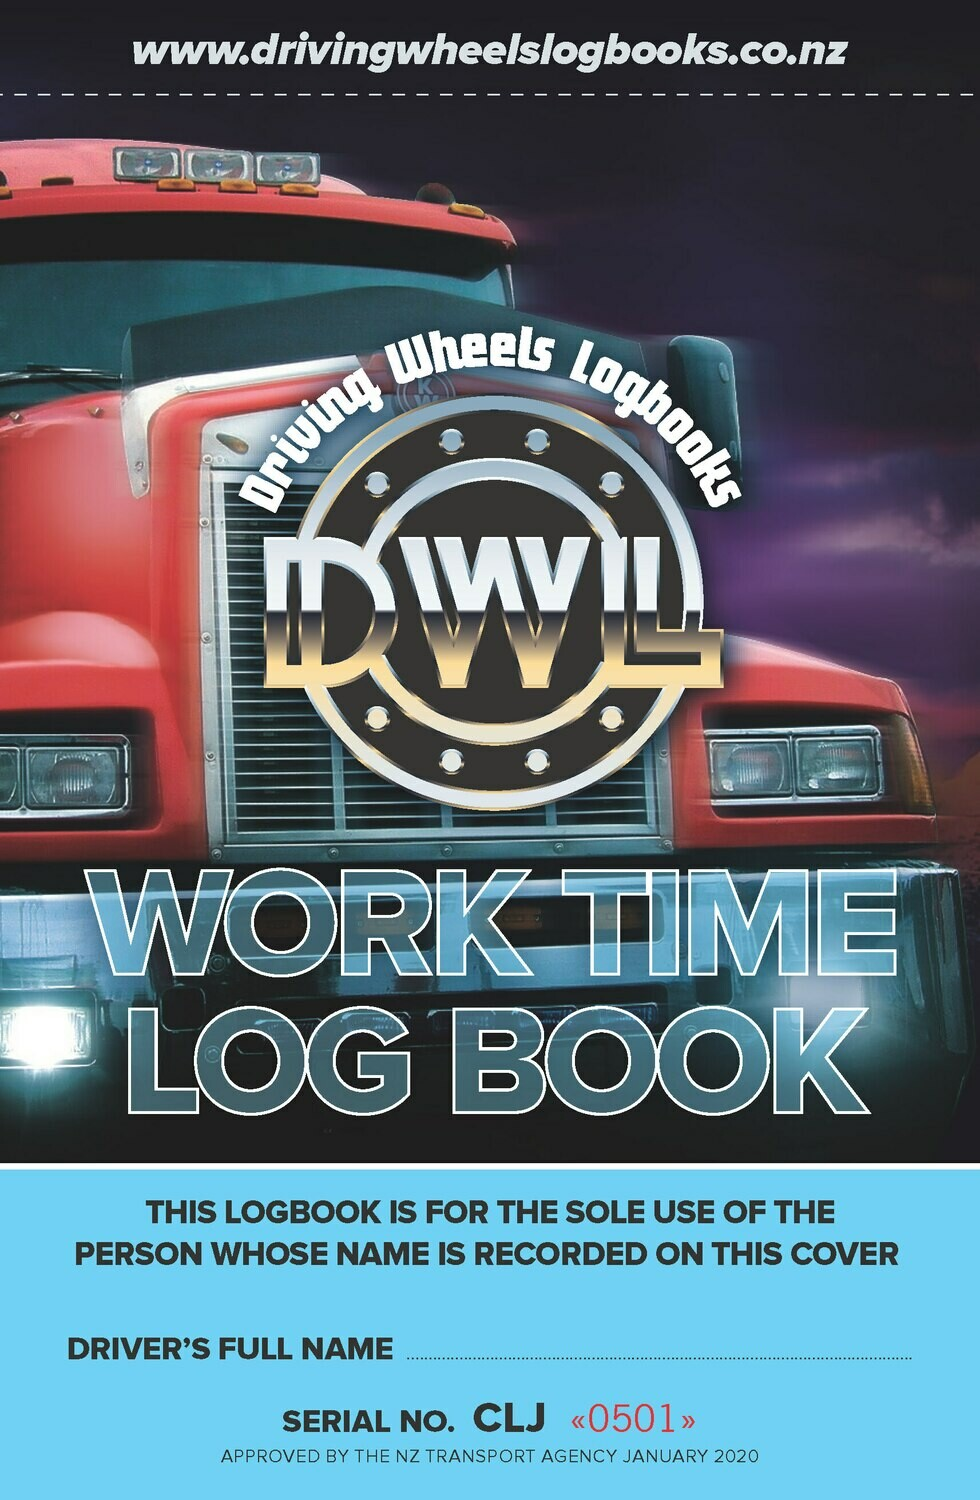 A5 Driving Wheels Worktime Logbook (CLJ) - NZTA Approved